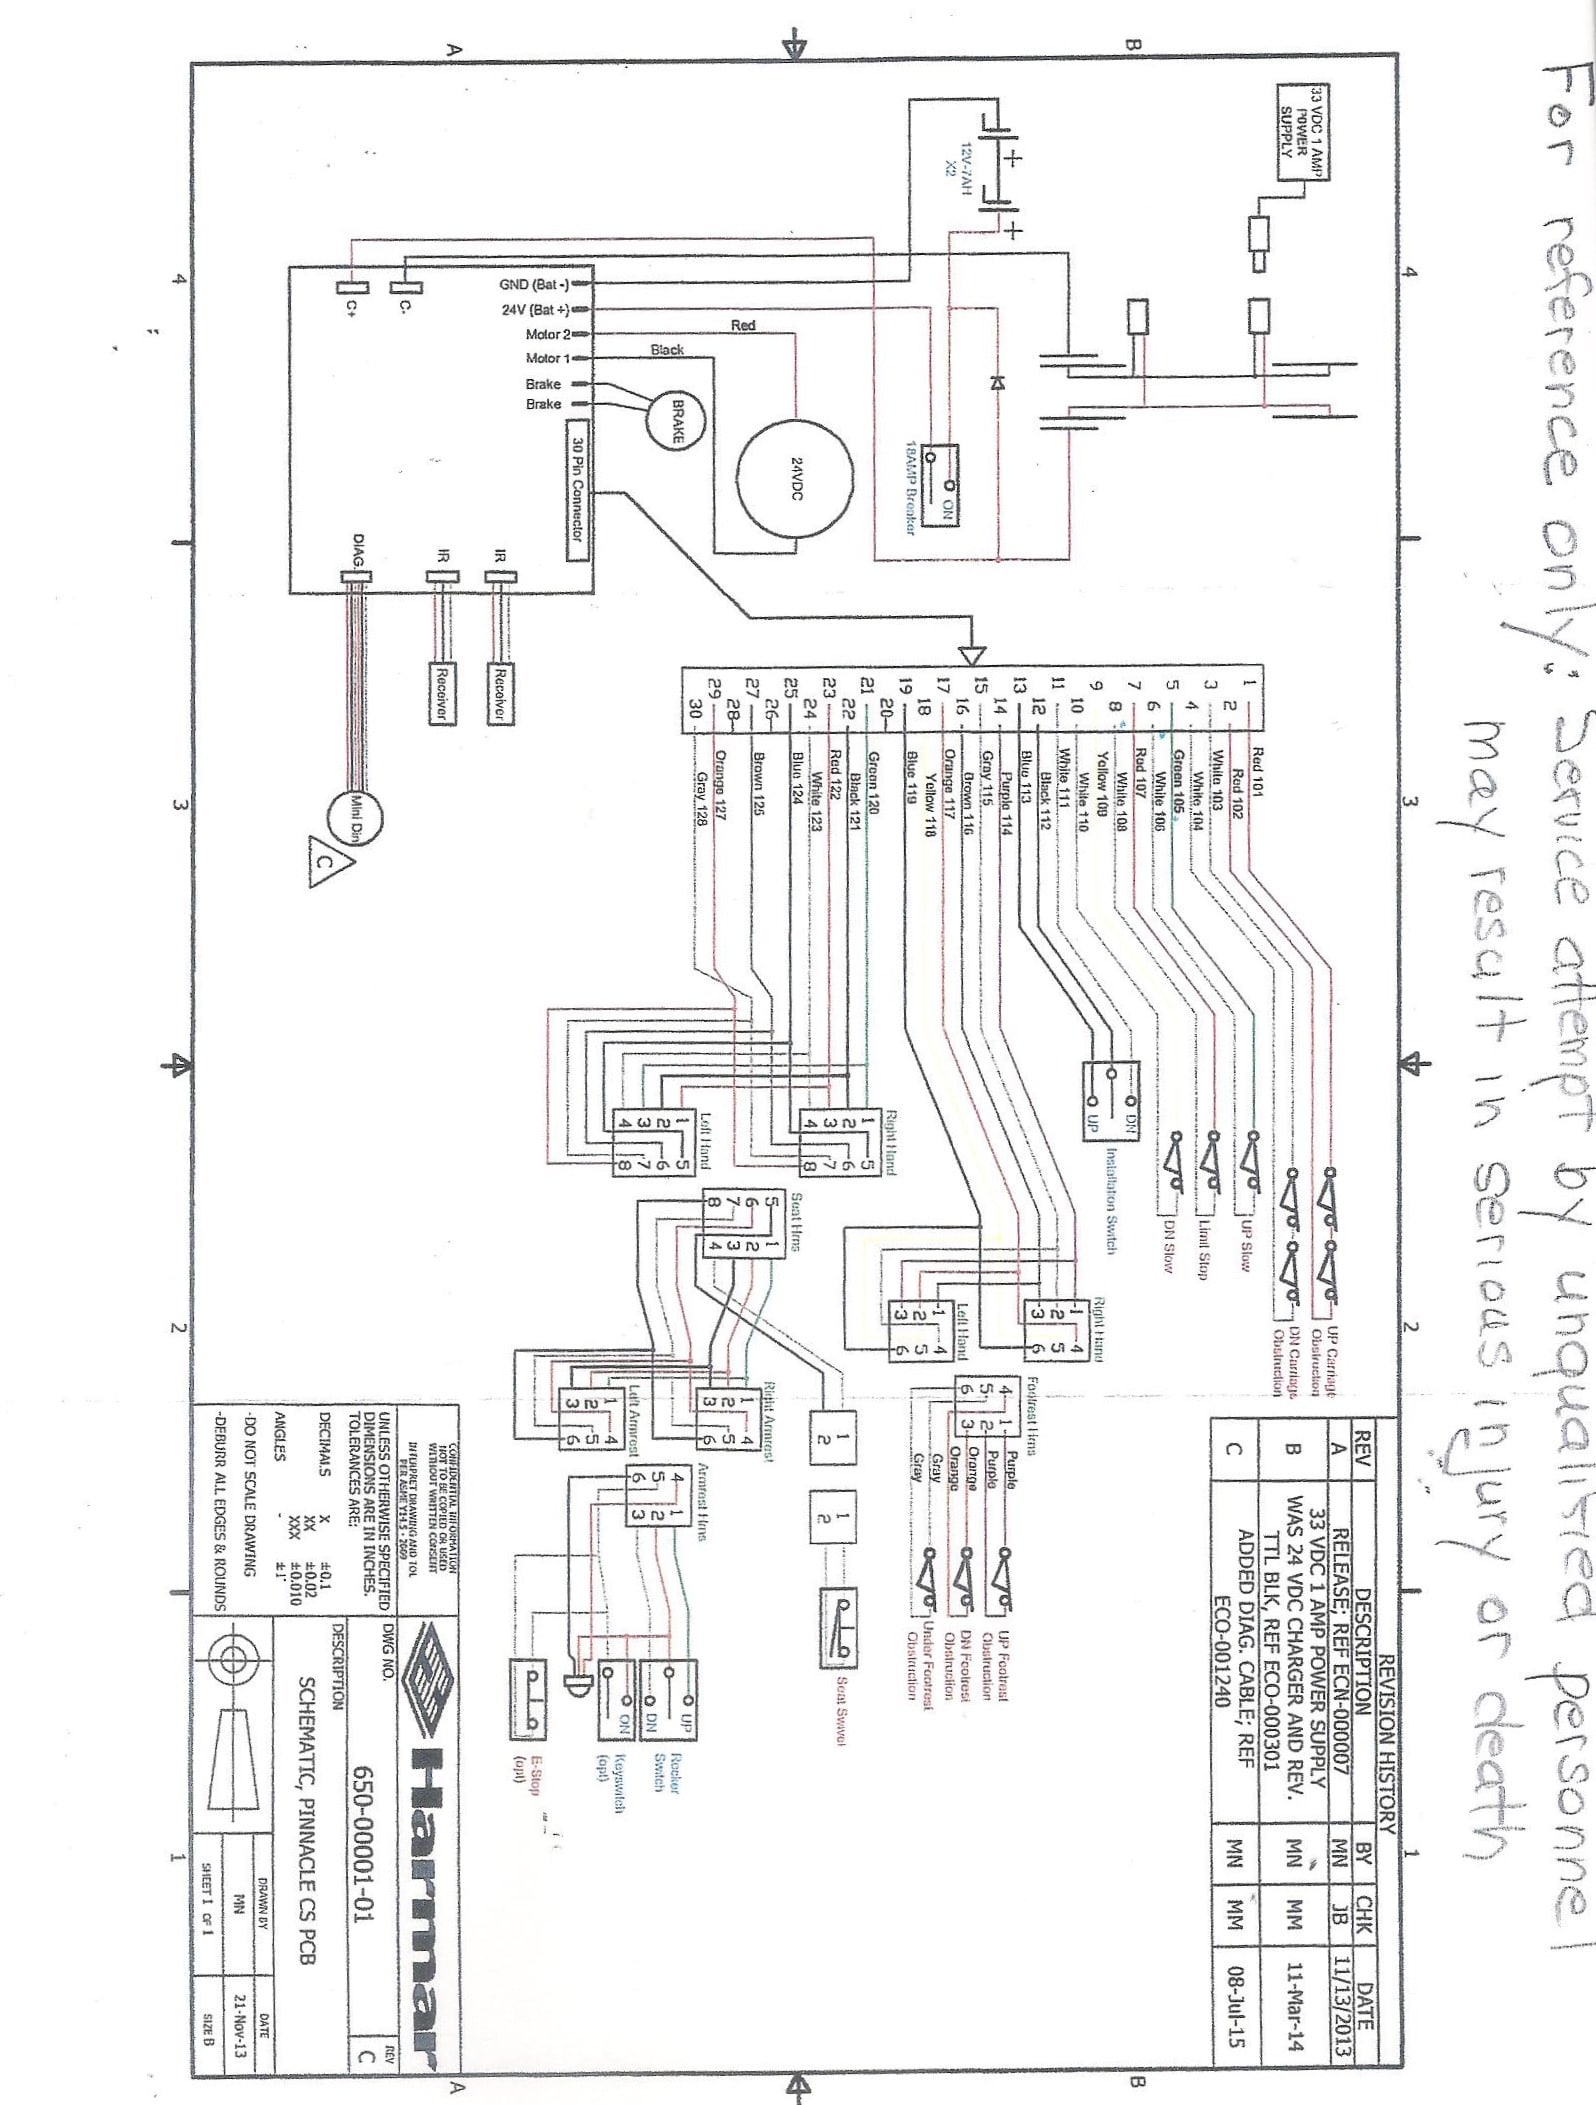 Pinnacle_Stairlift_Schematic_CSPCB_Harmar_001 a pinnacle stairlift schematic cspcb harmar 001 jpg 21st century savaria v1504 wiring diagram at alyssarenee.co